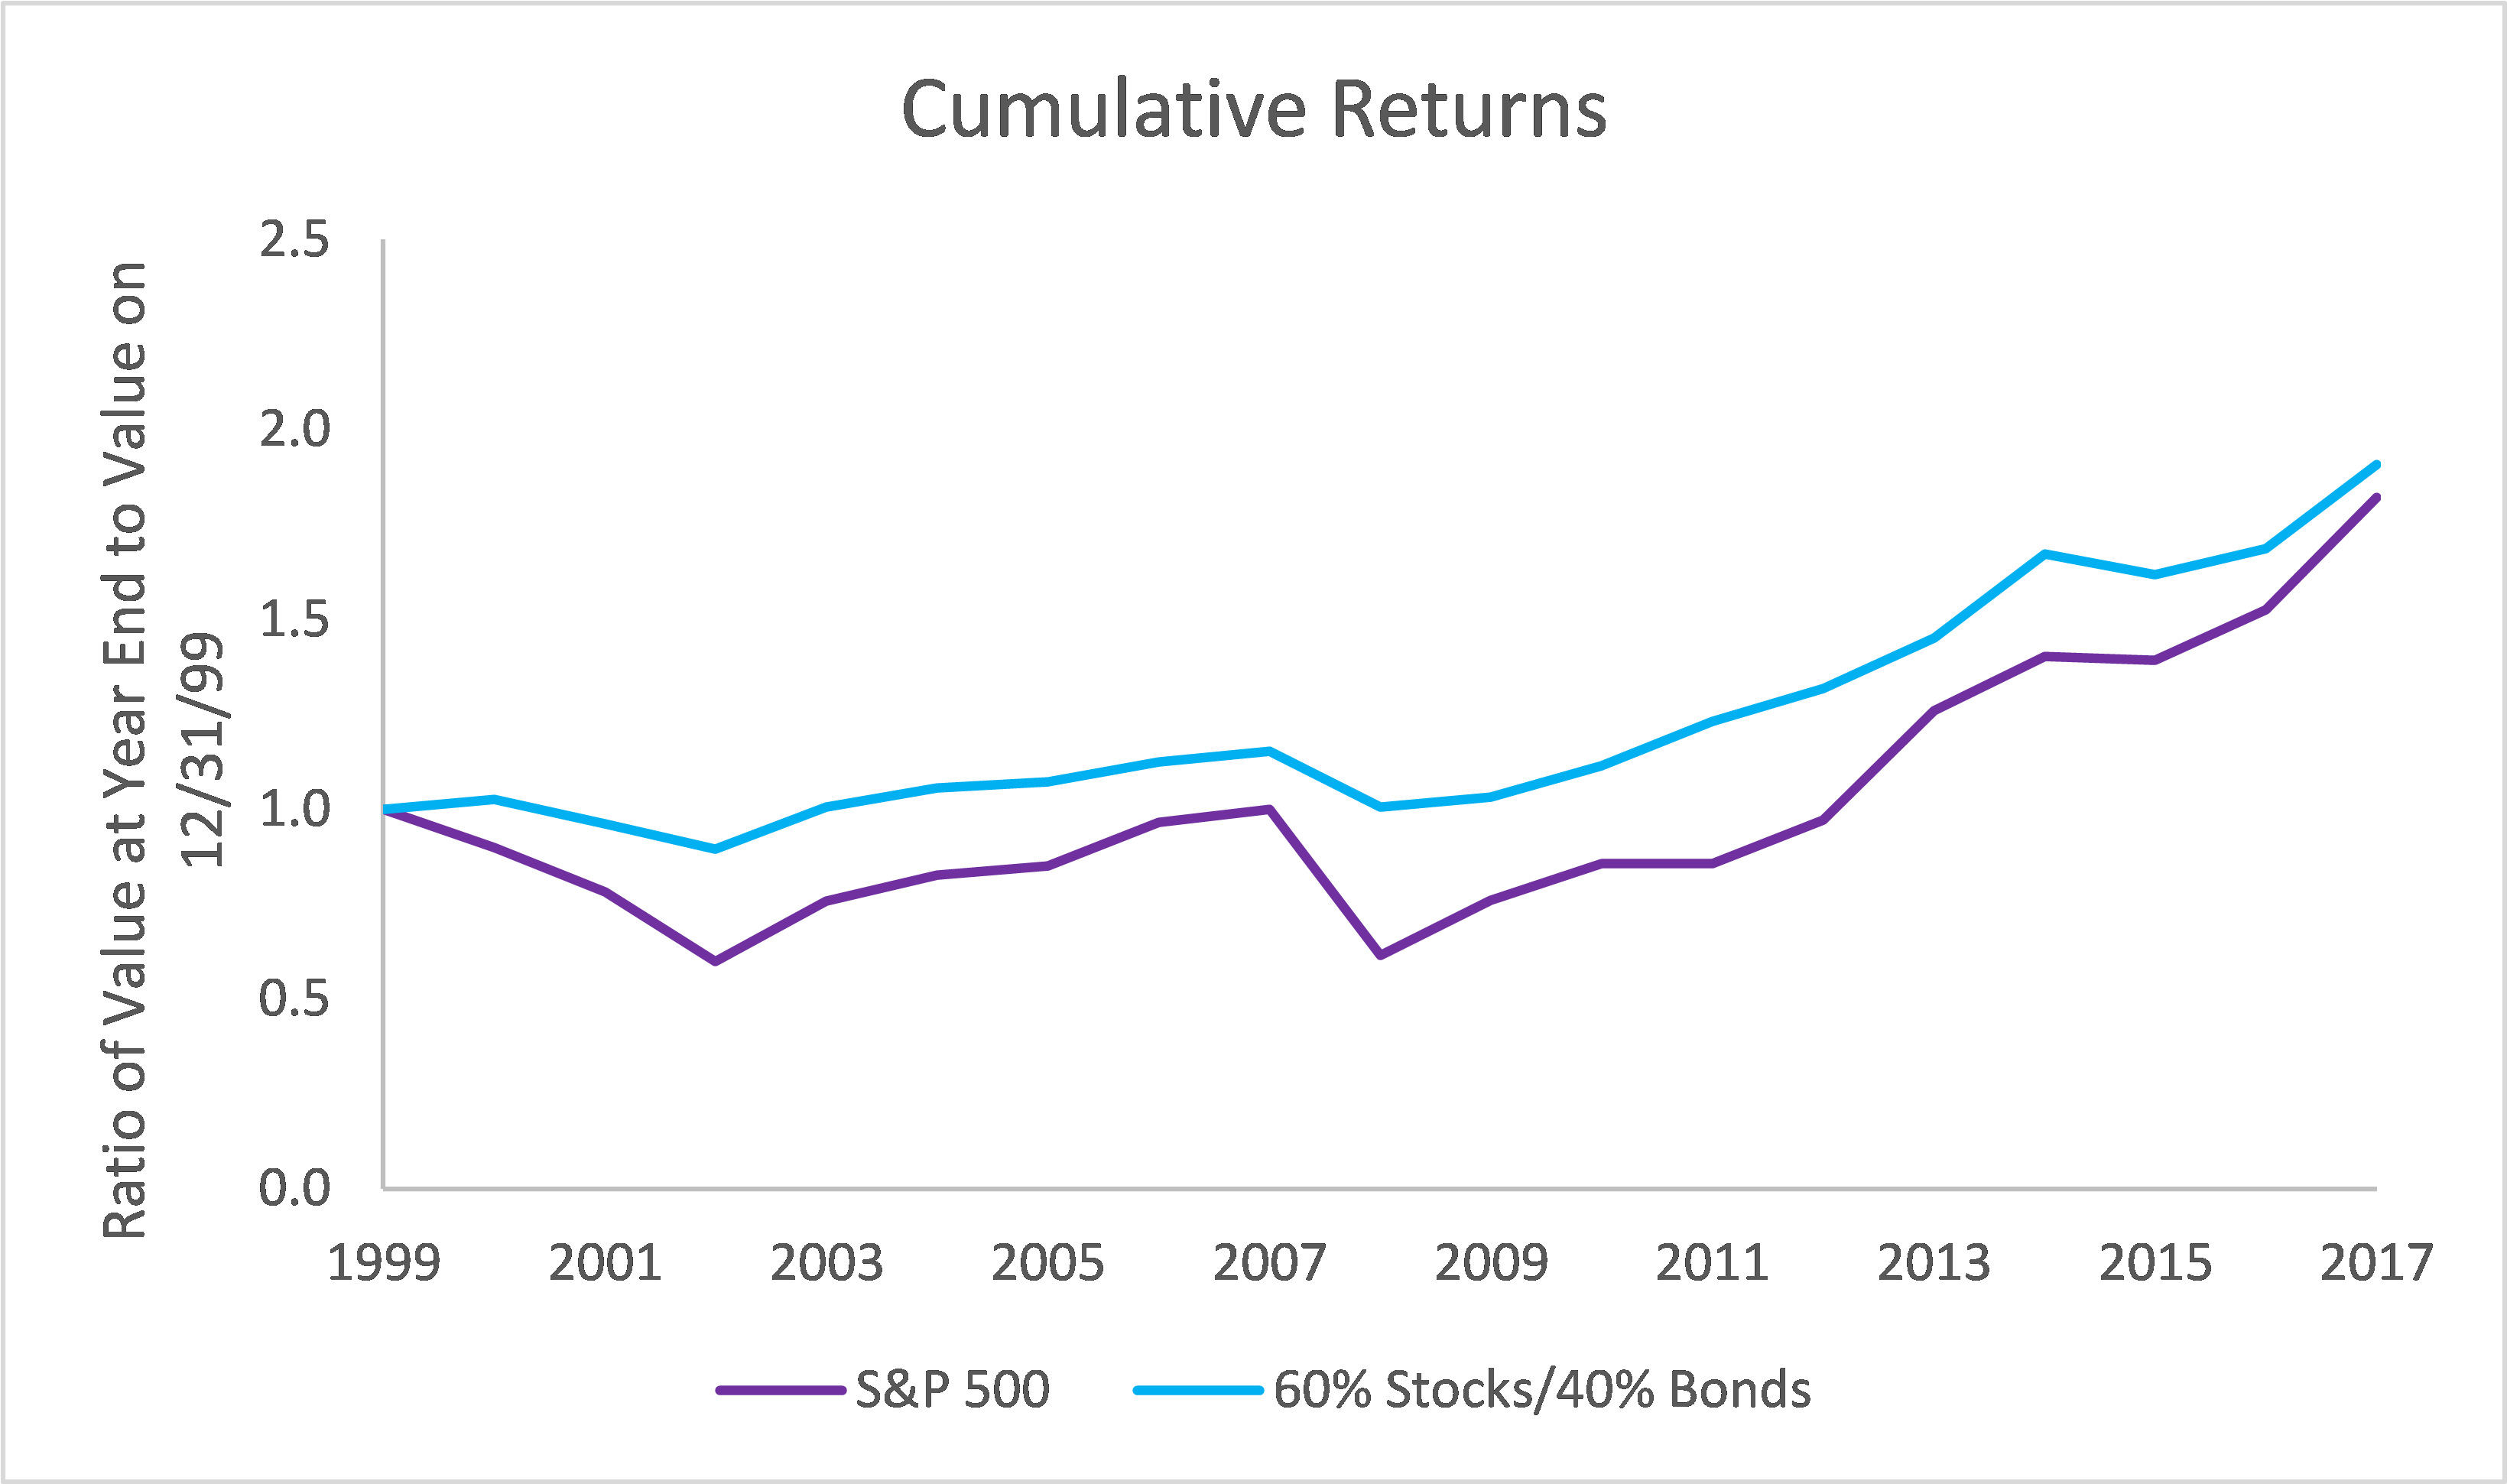 Cumulative returns on S&P 500 and mixed portfolio